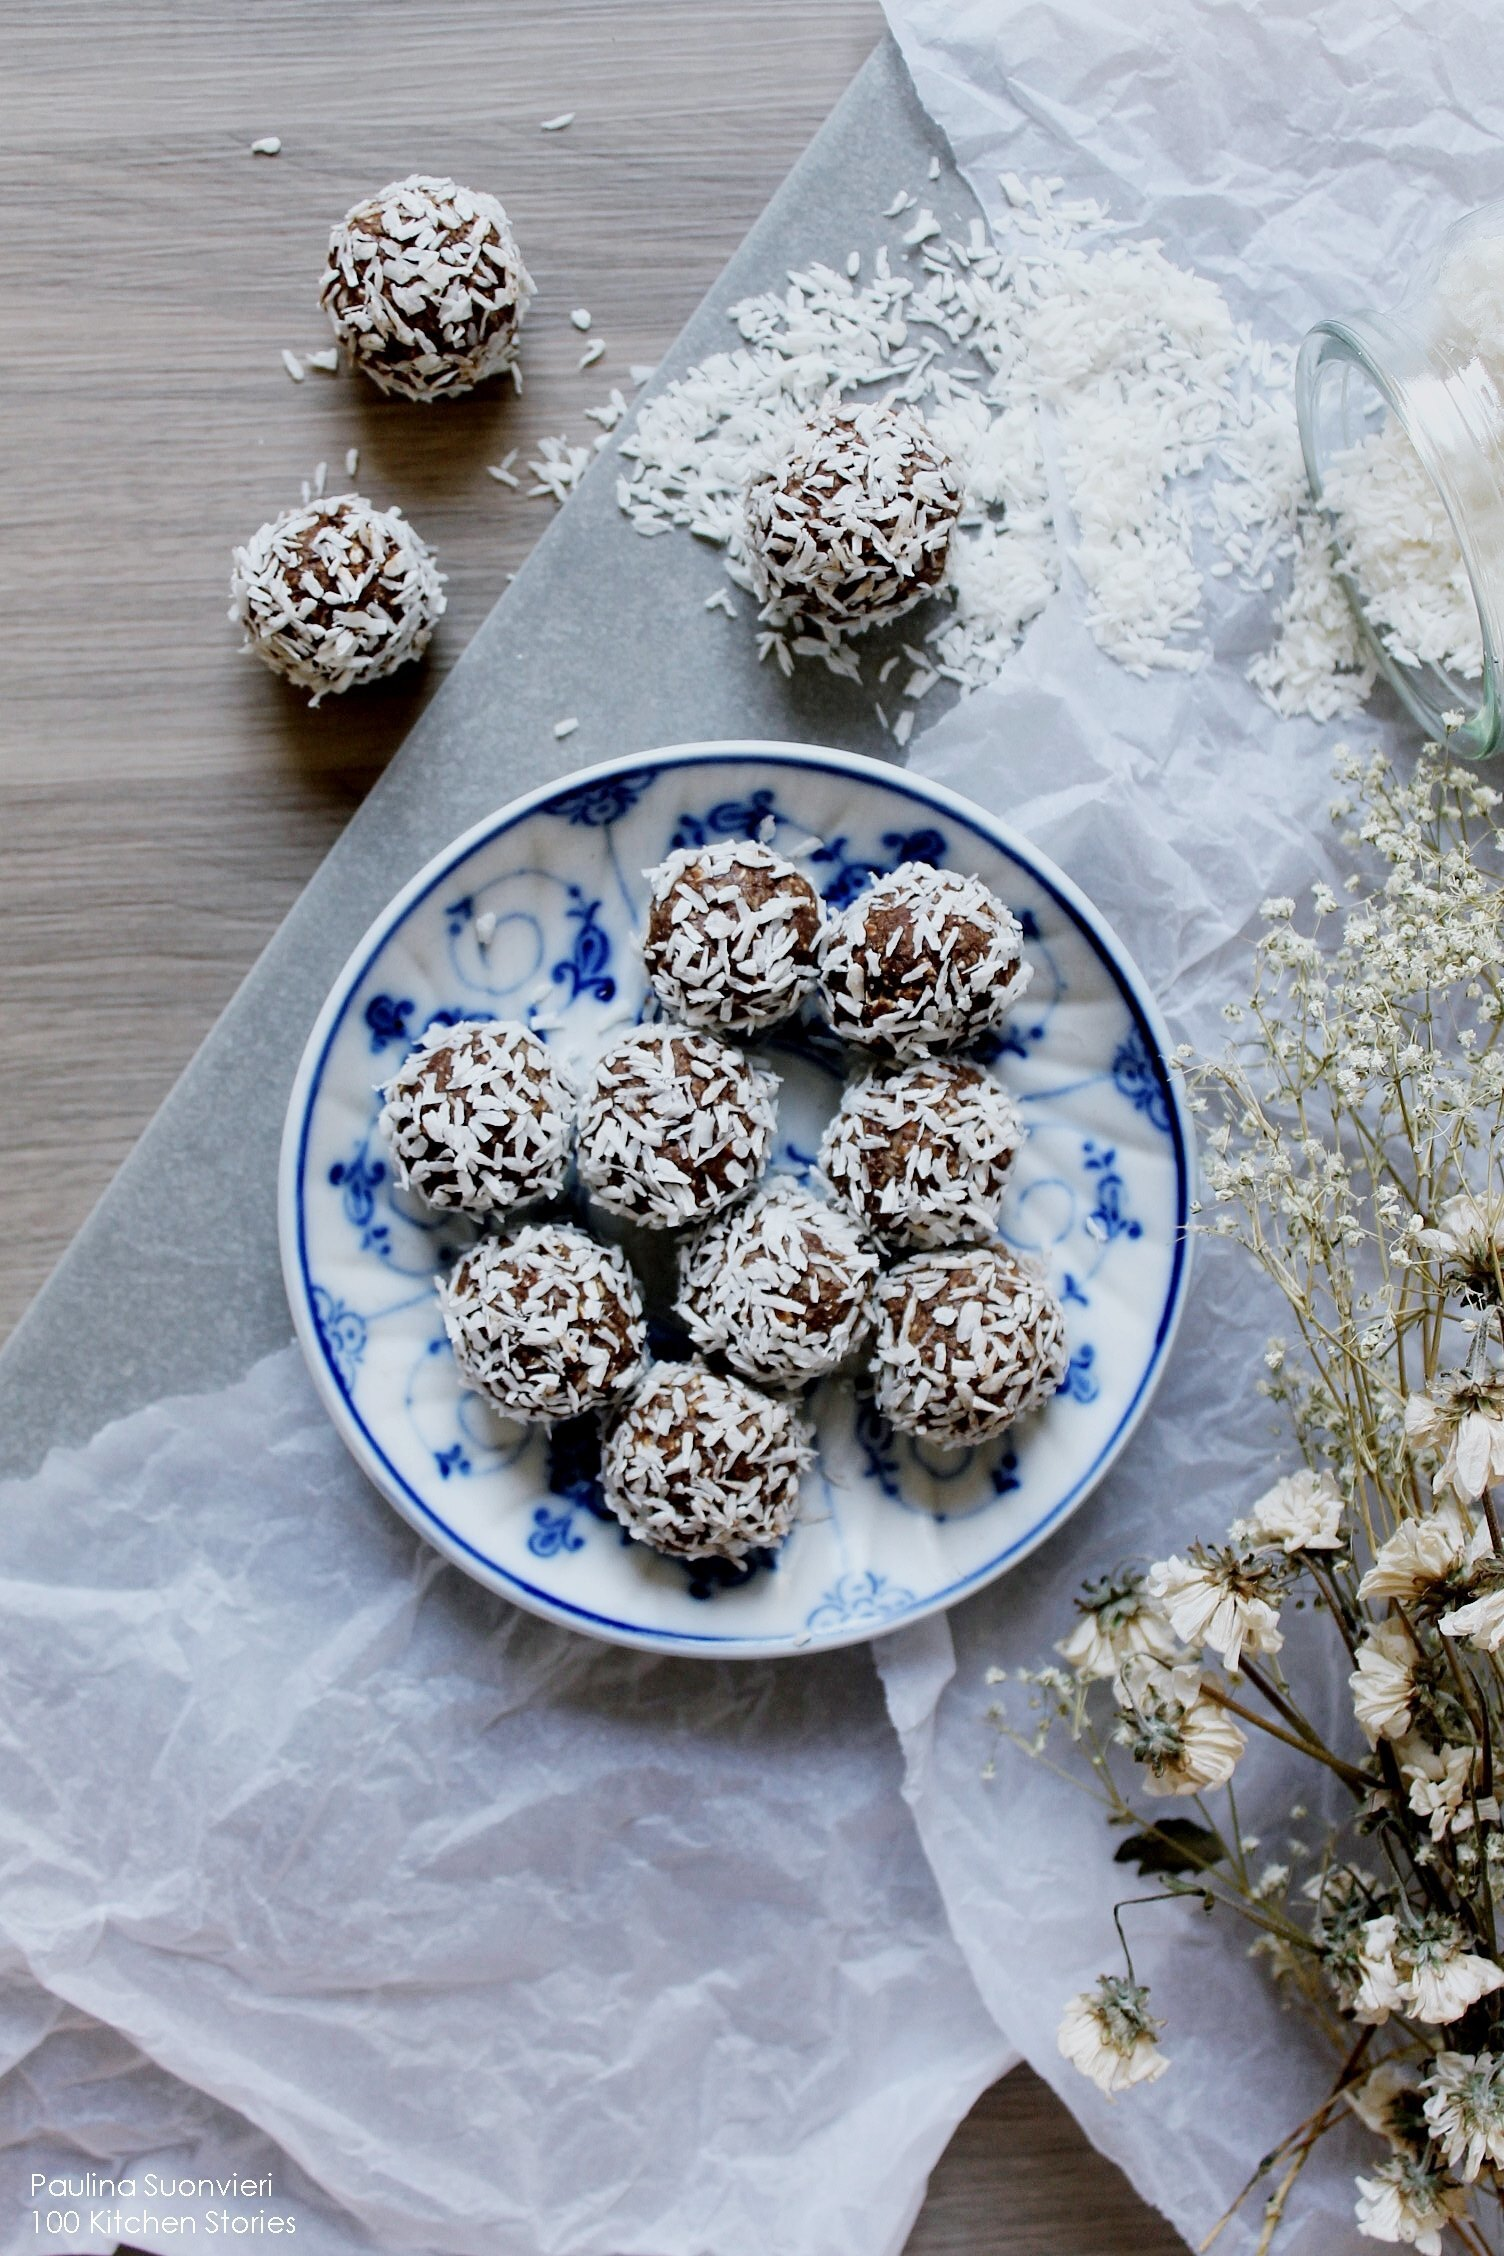 The Swedish Chocolate Ball Day + My Healthified Raw Vegan Recipe